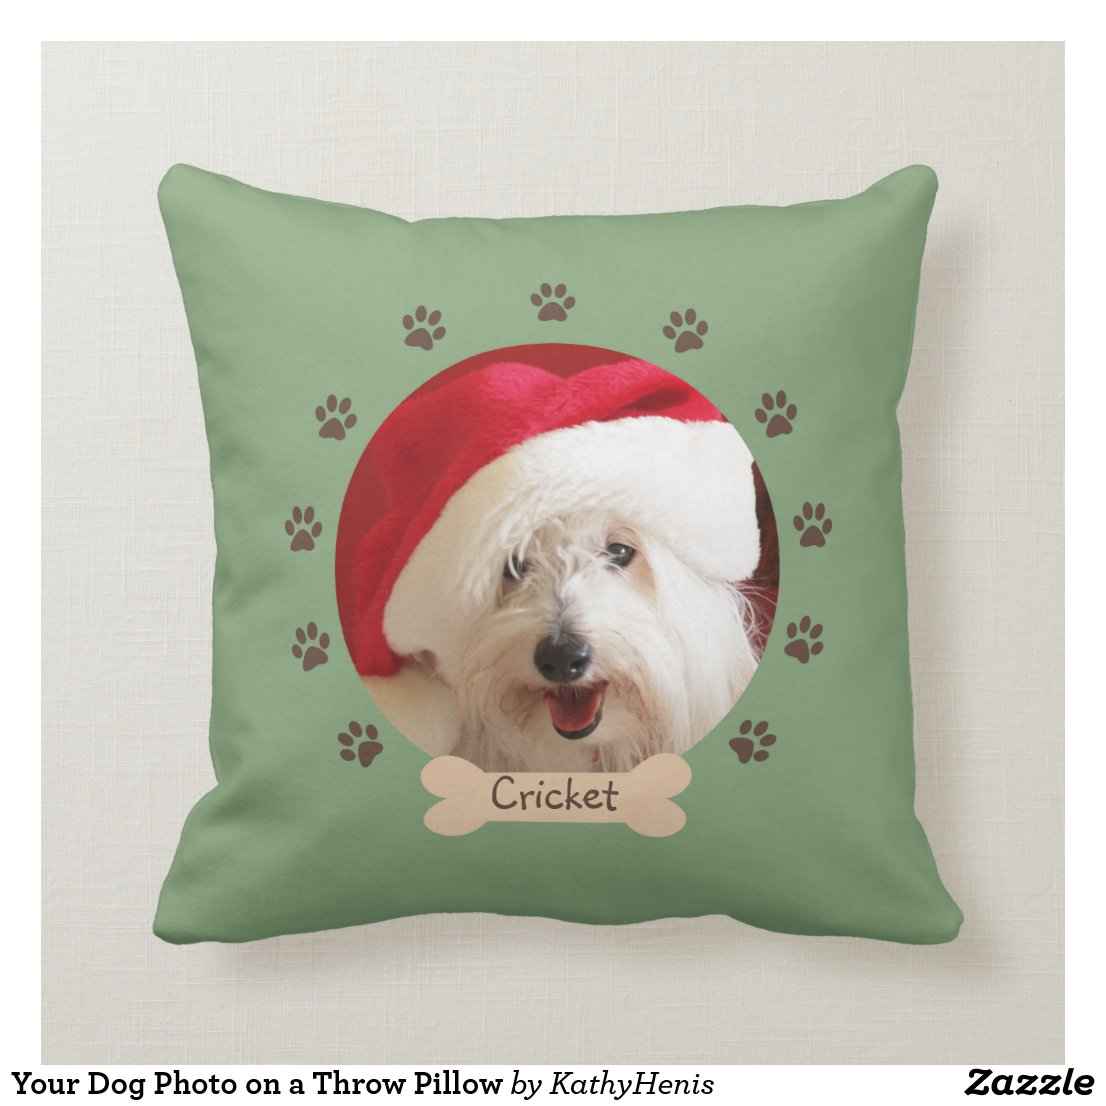 Your Dog Photo on a Throw Pillow